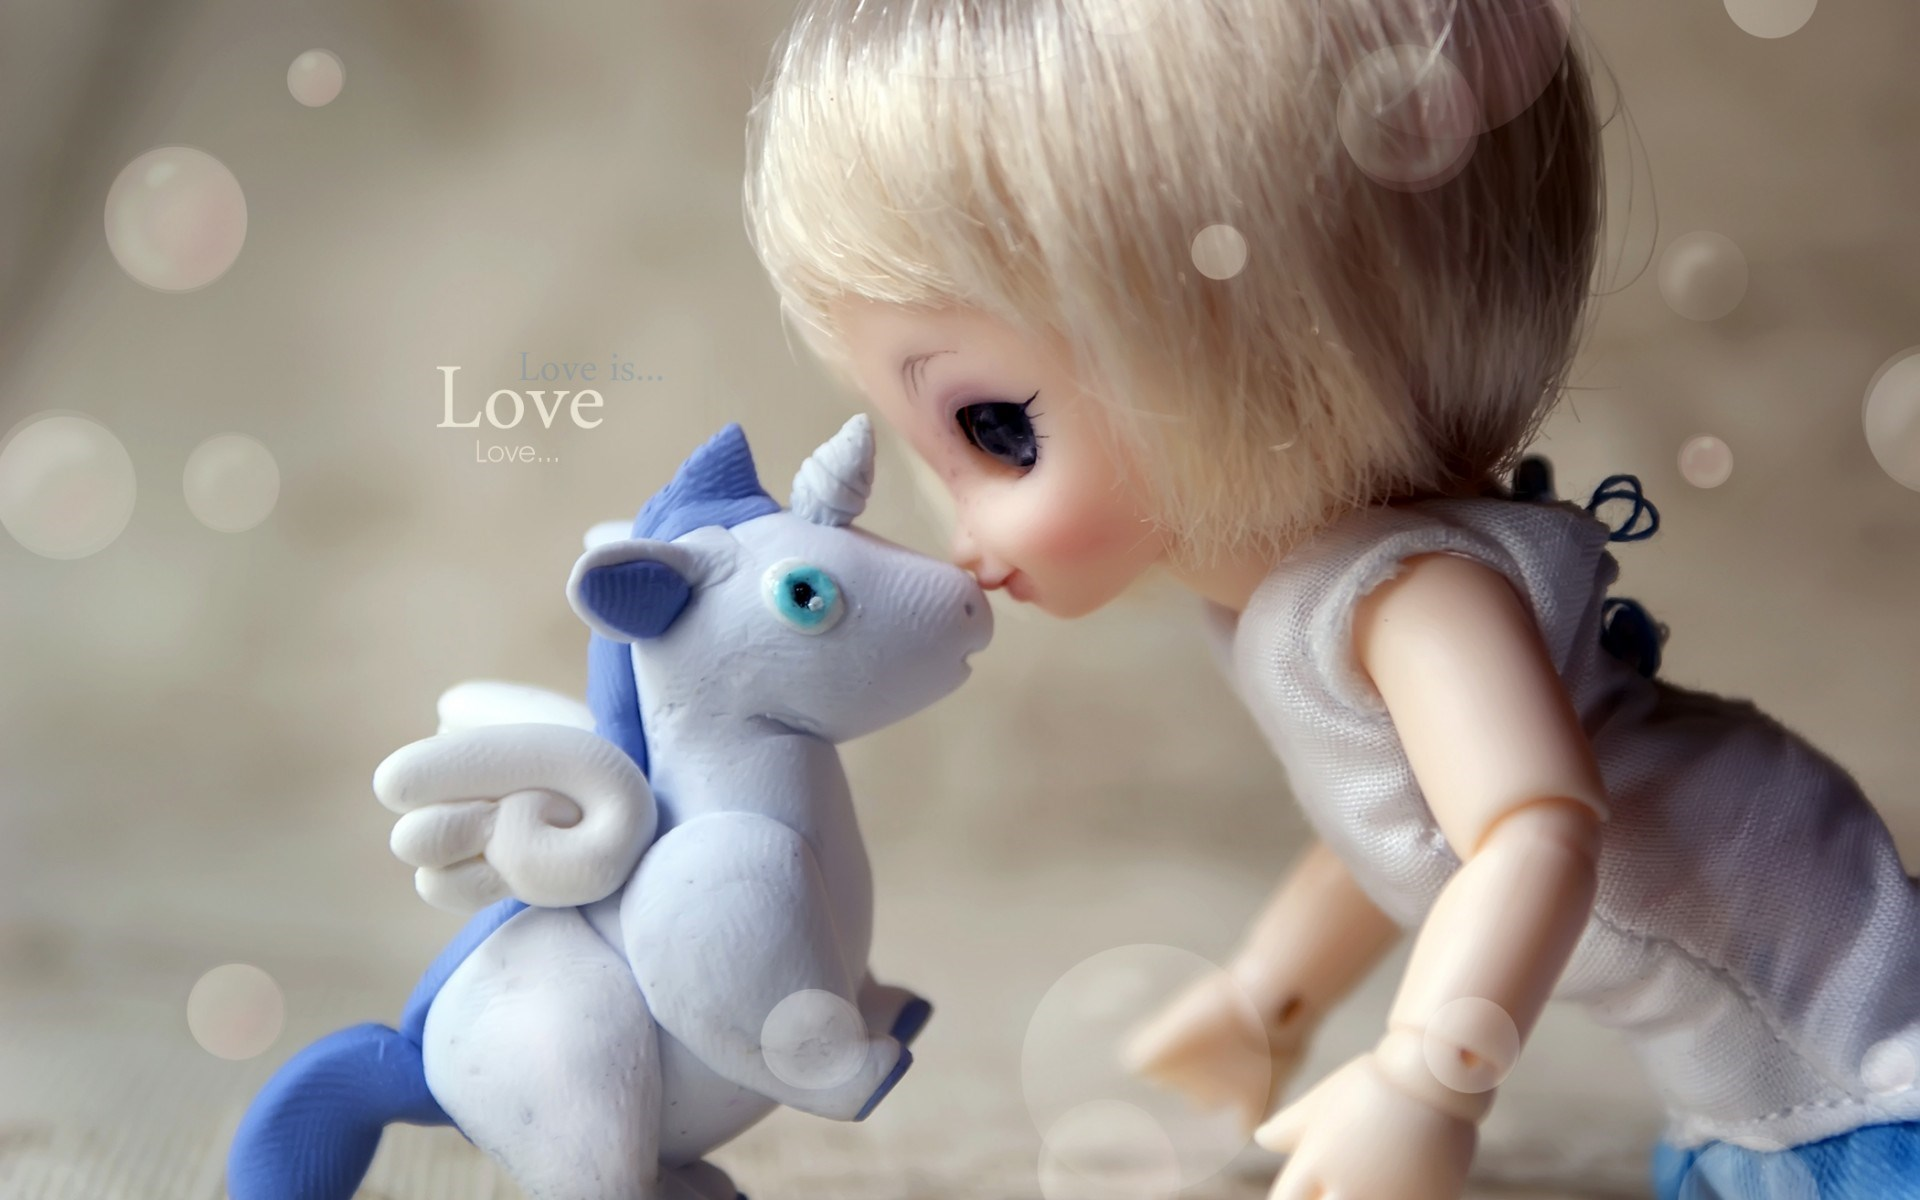 baby doll kiss unicorn wallpaper - wallpaper, high definition, high